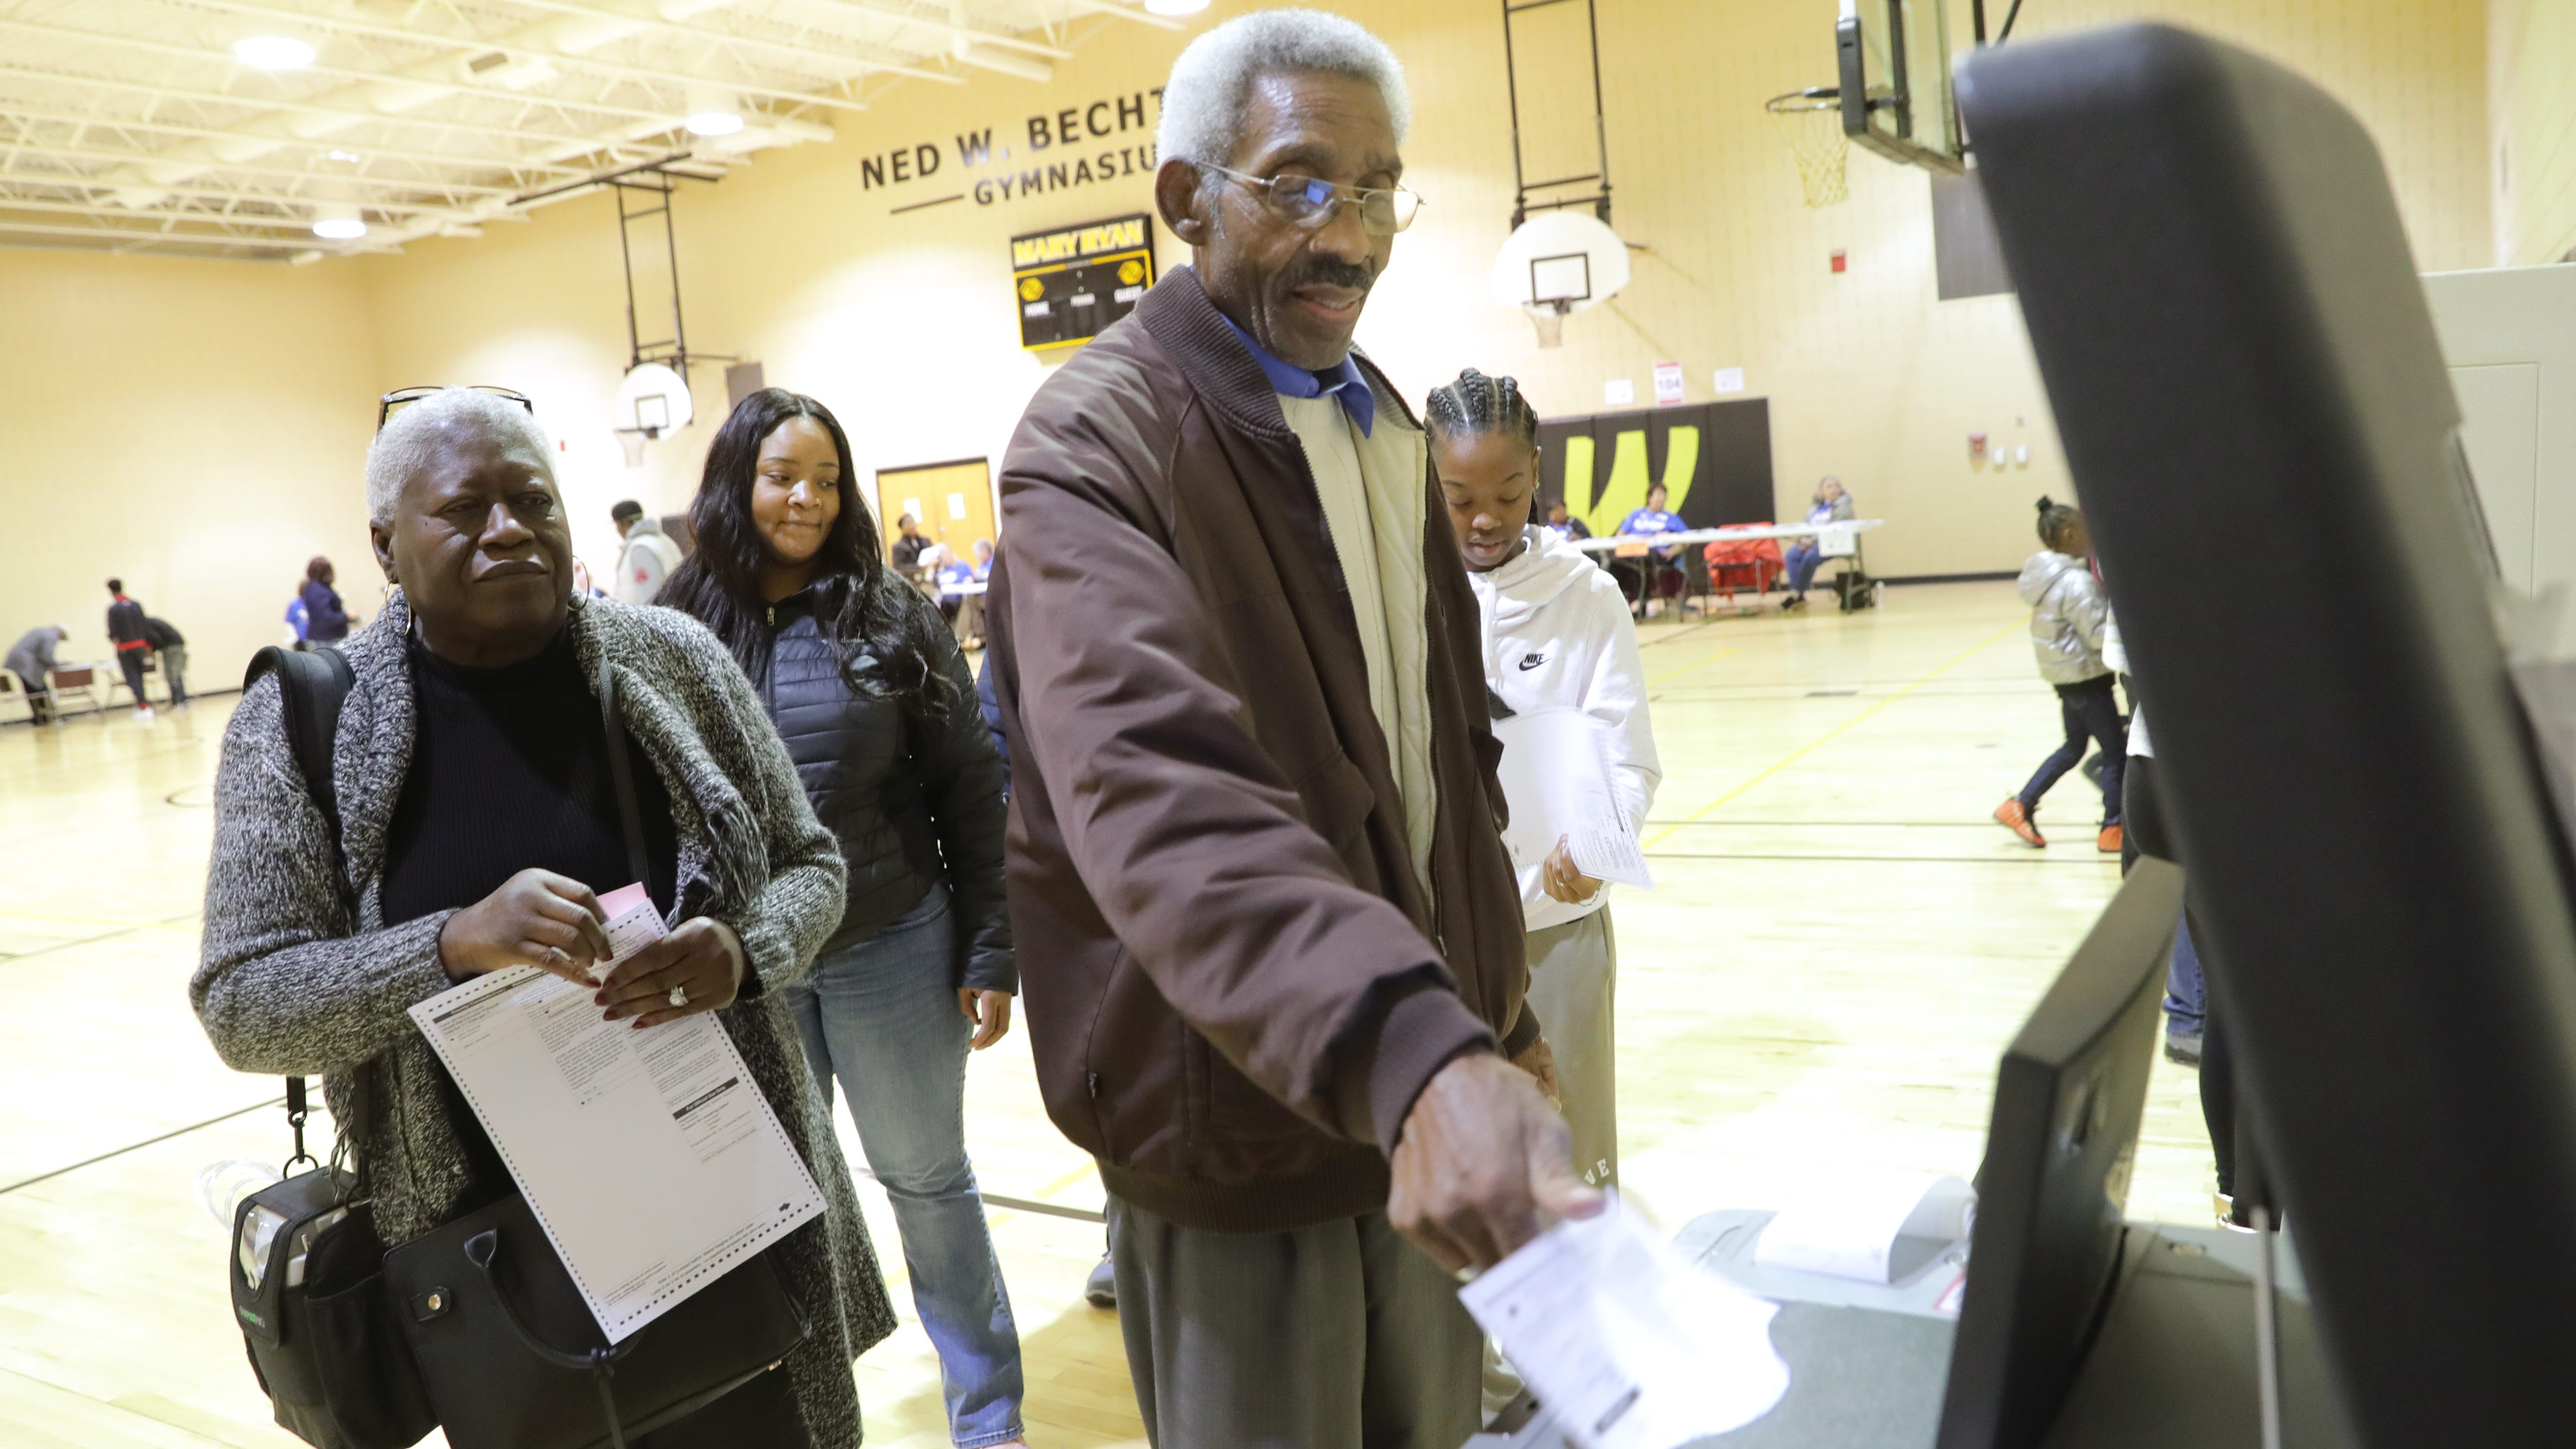 Charles McDowell of Milwaukee feeds his ballot after voting at the Boys and Girls Club in Sherman Park in Milwaukee.